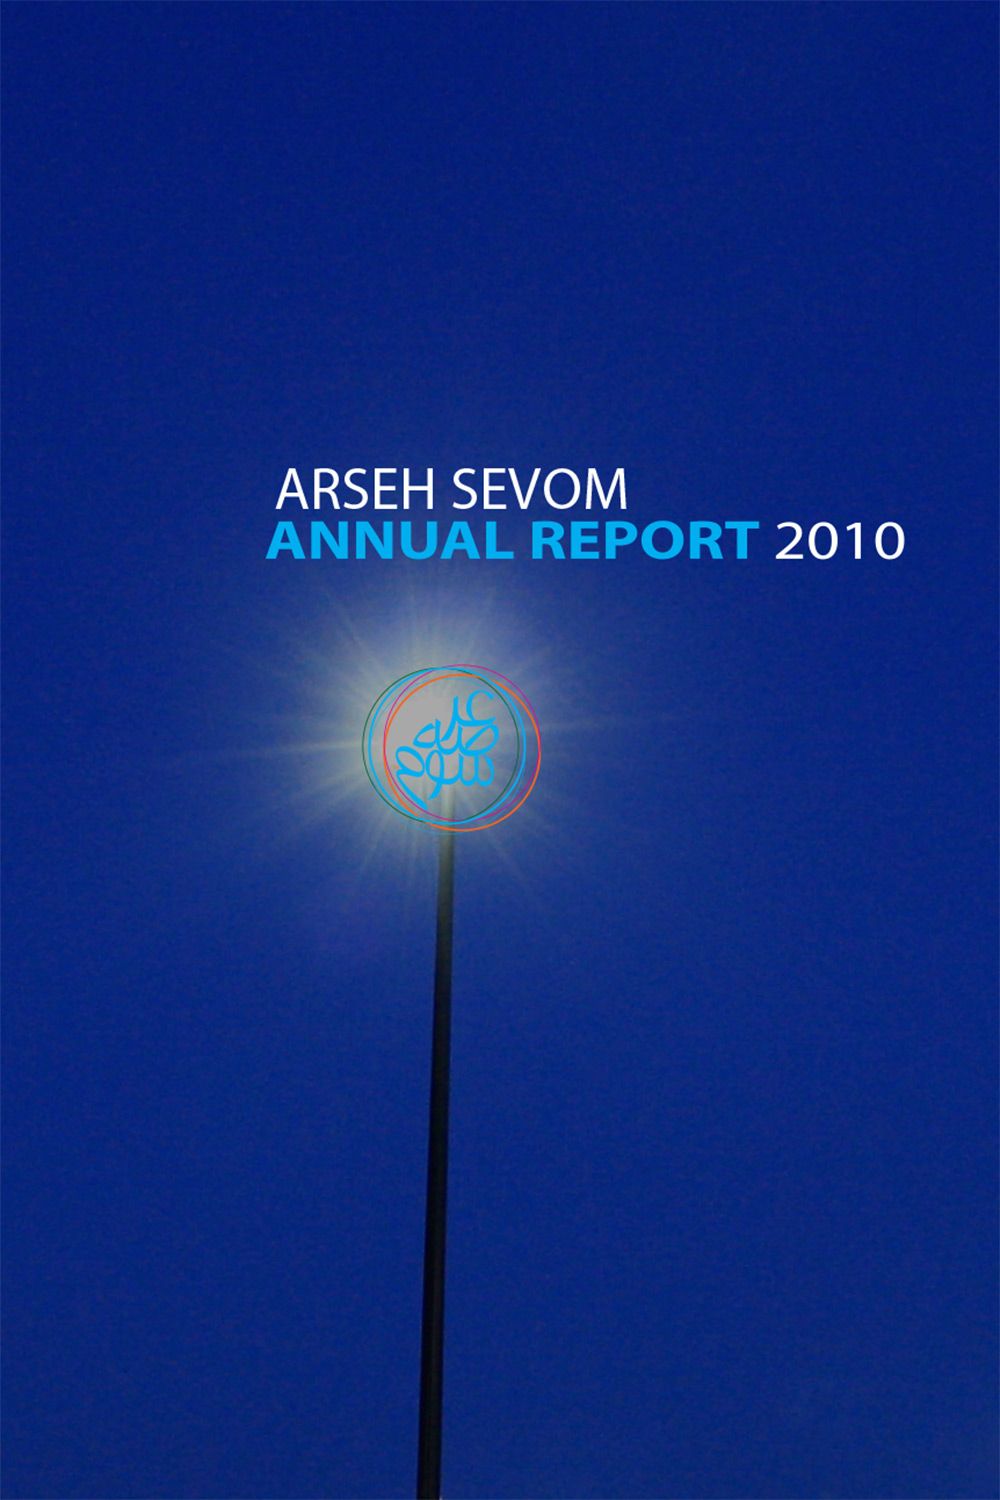 arseh-sevom-annual-report-2010